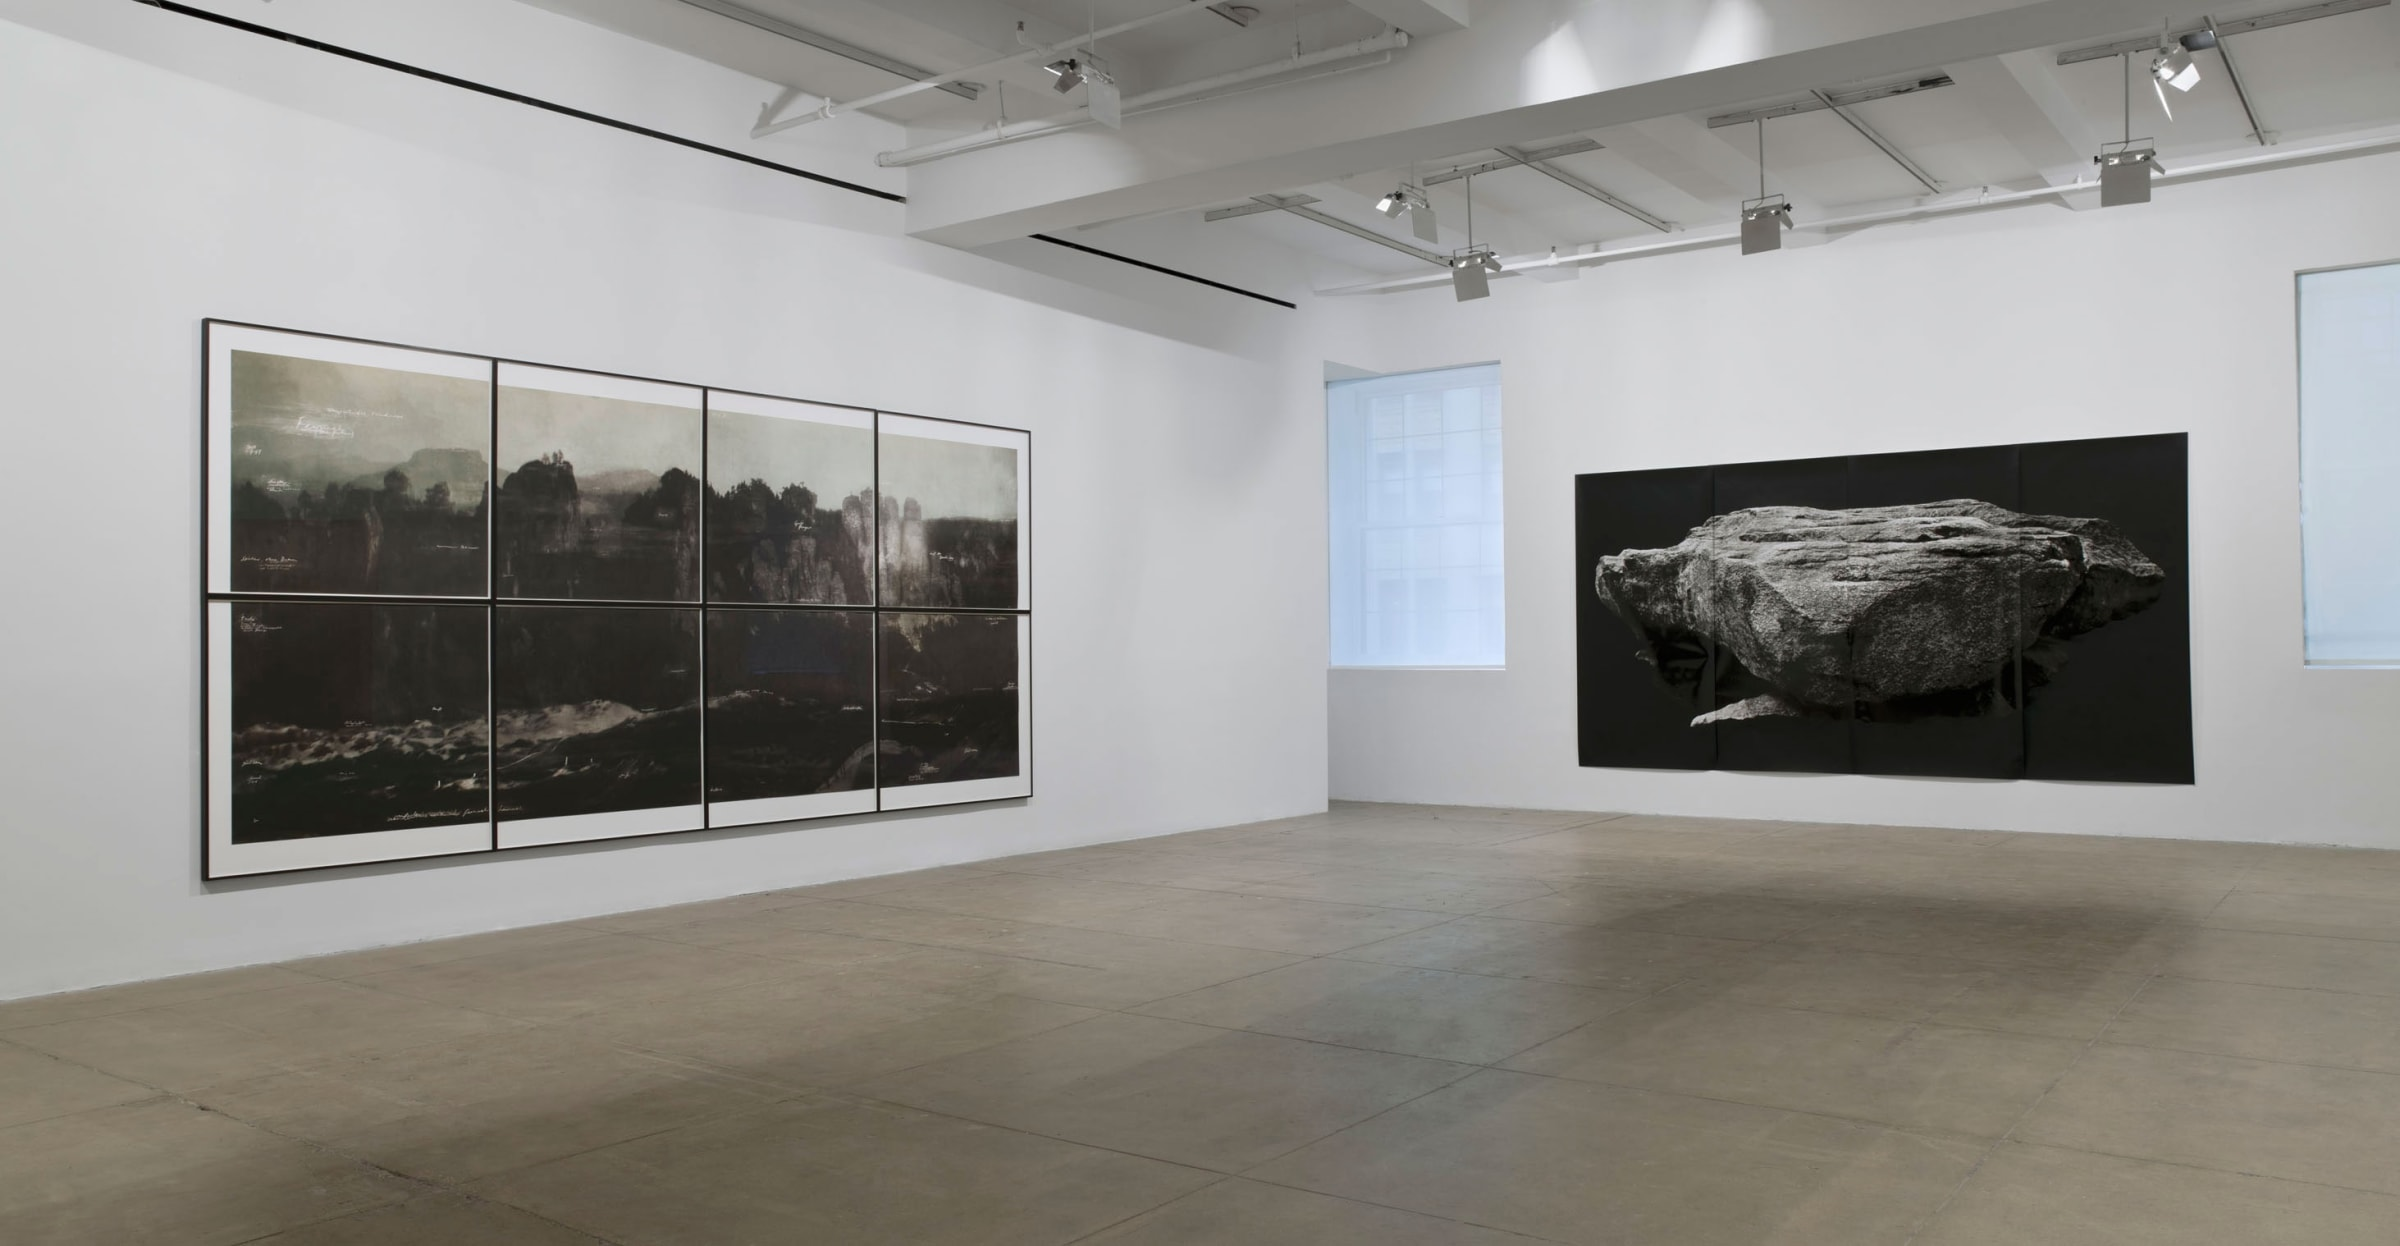 On the left wall, eight framed prints are arranged to form a landscape. A large black print of a rock against a black background hangs on the right.